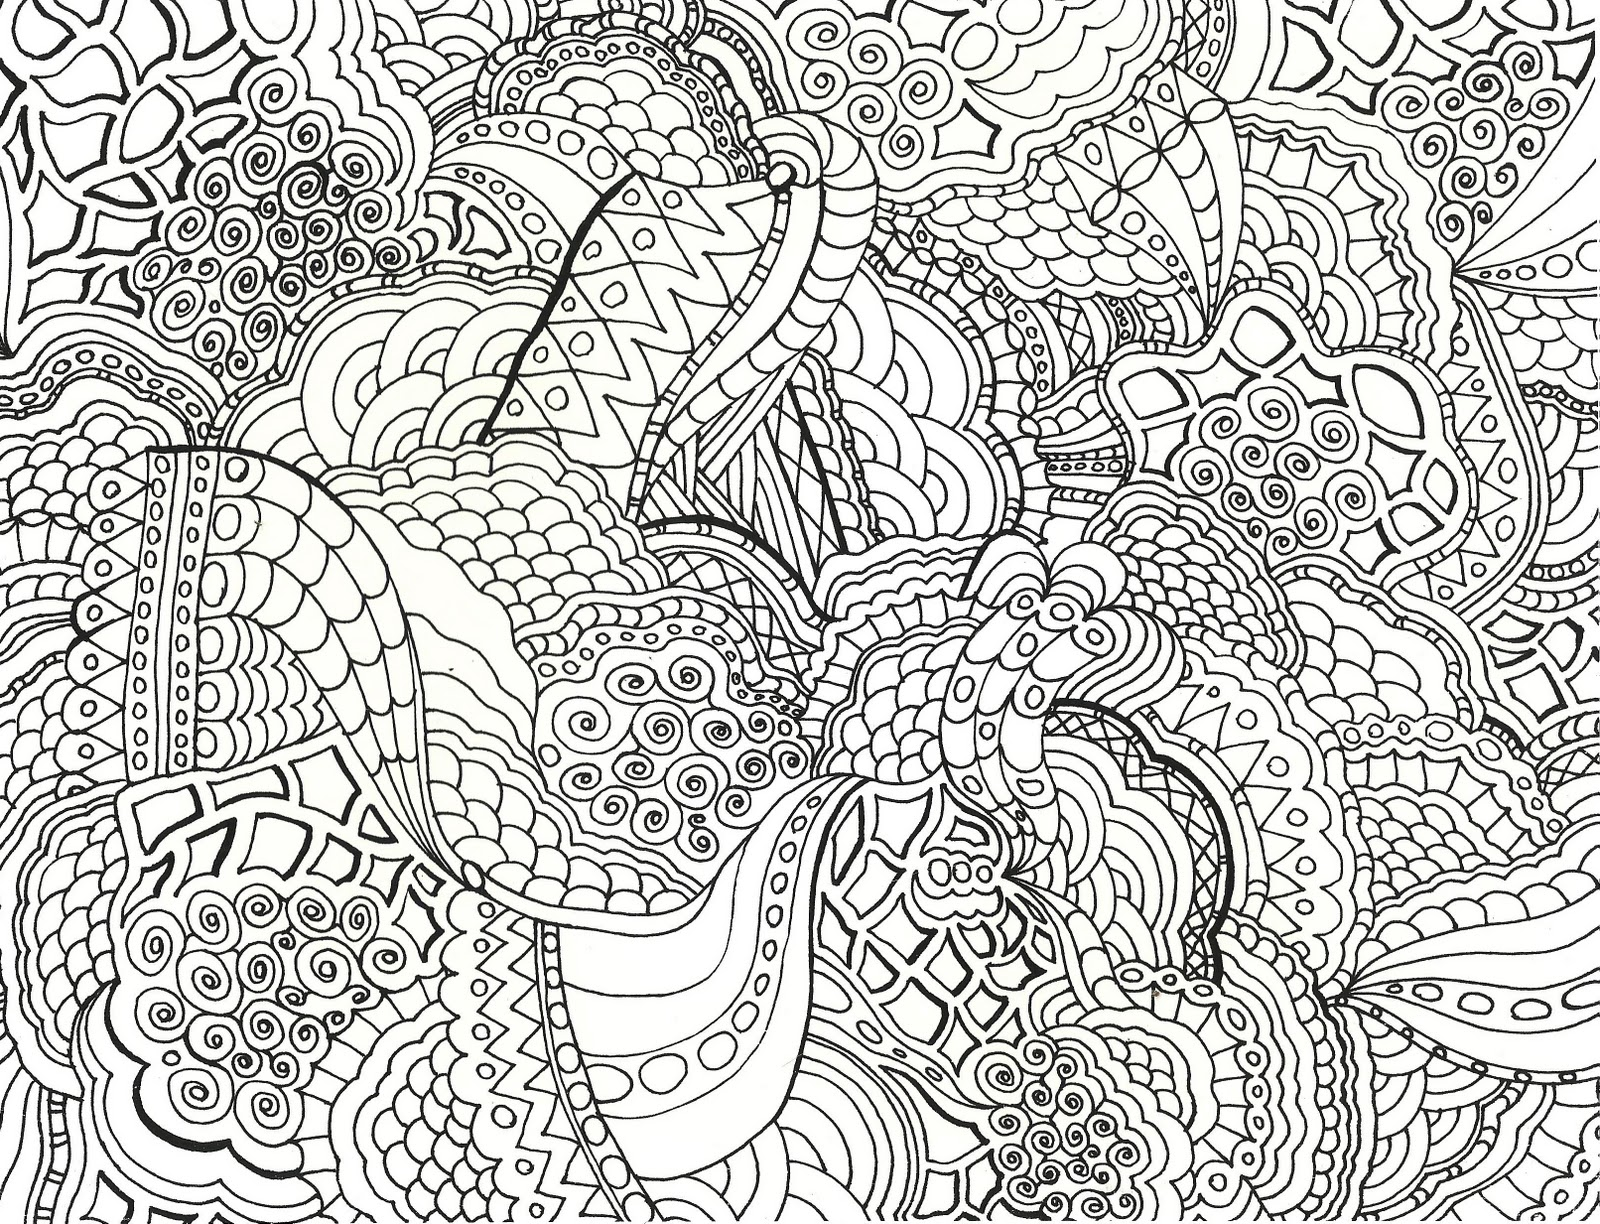 Detailed Coloring Pages For Adults Magnificent Detailed Coloring Pages To Download And Print For Free